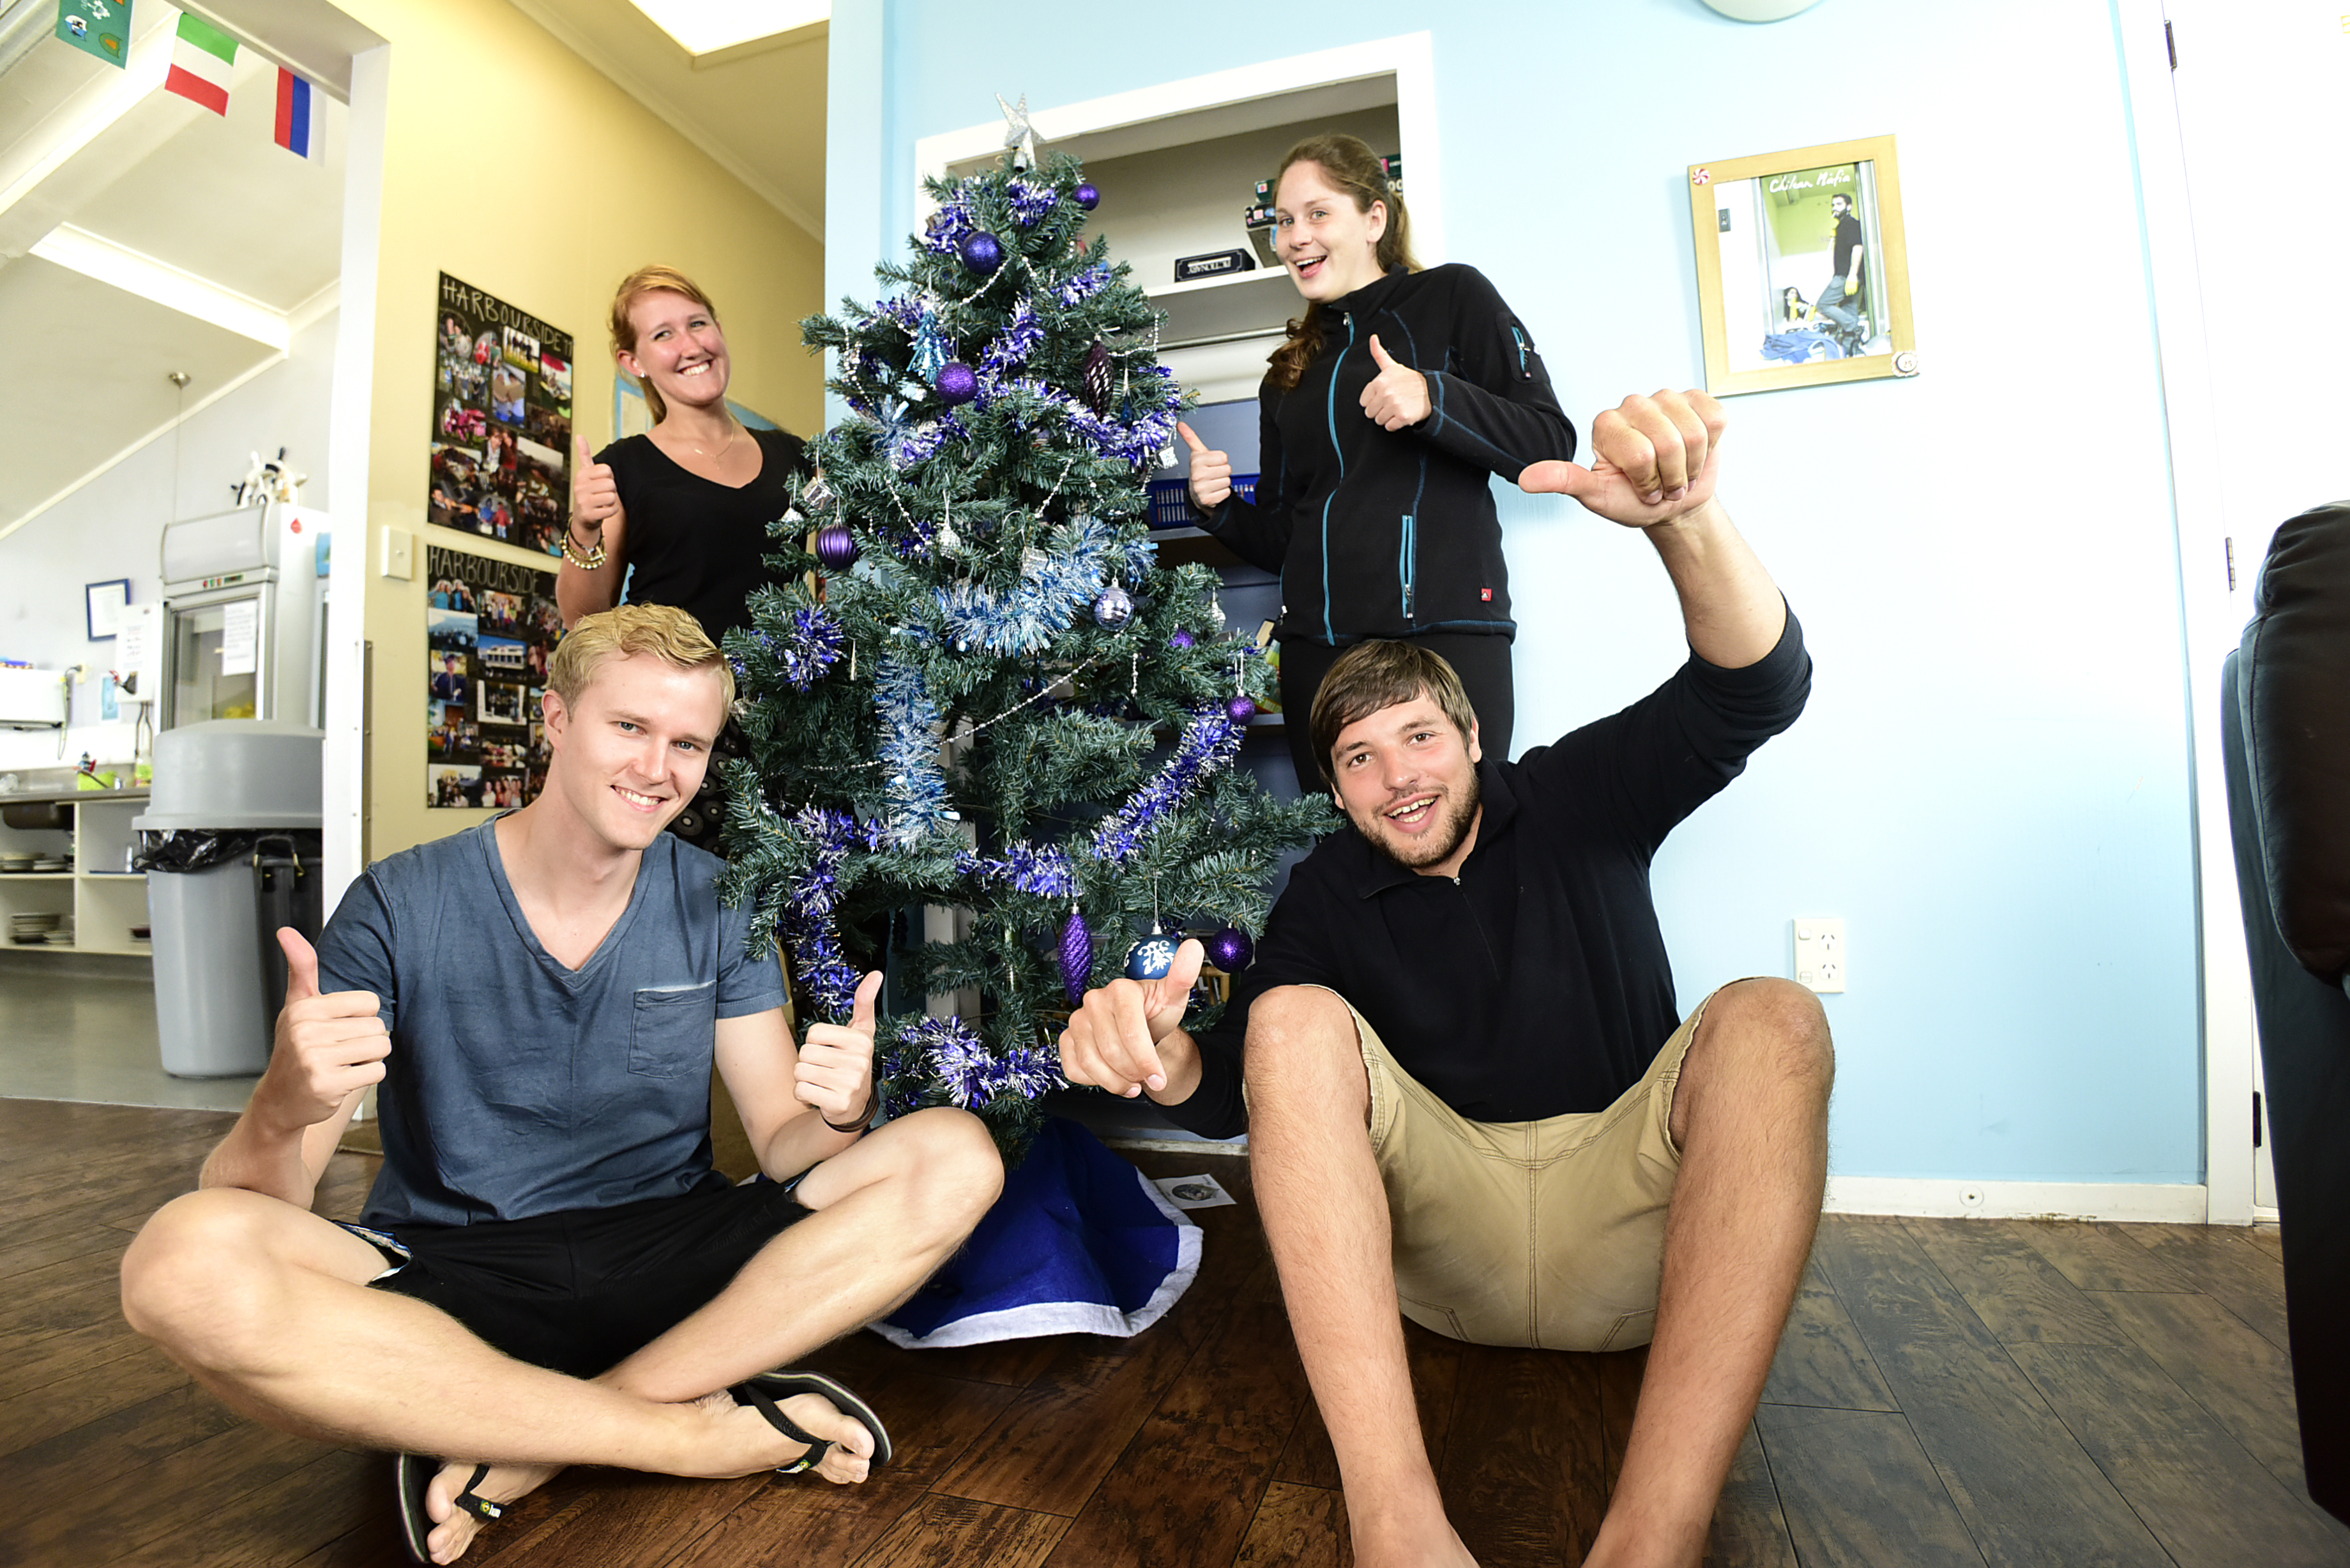 A Different Kind Of Christmas.A Different Kind Of Christmas For Travellers Nz Herald